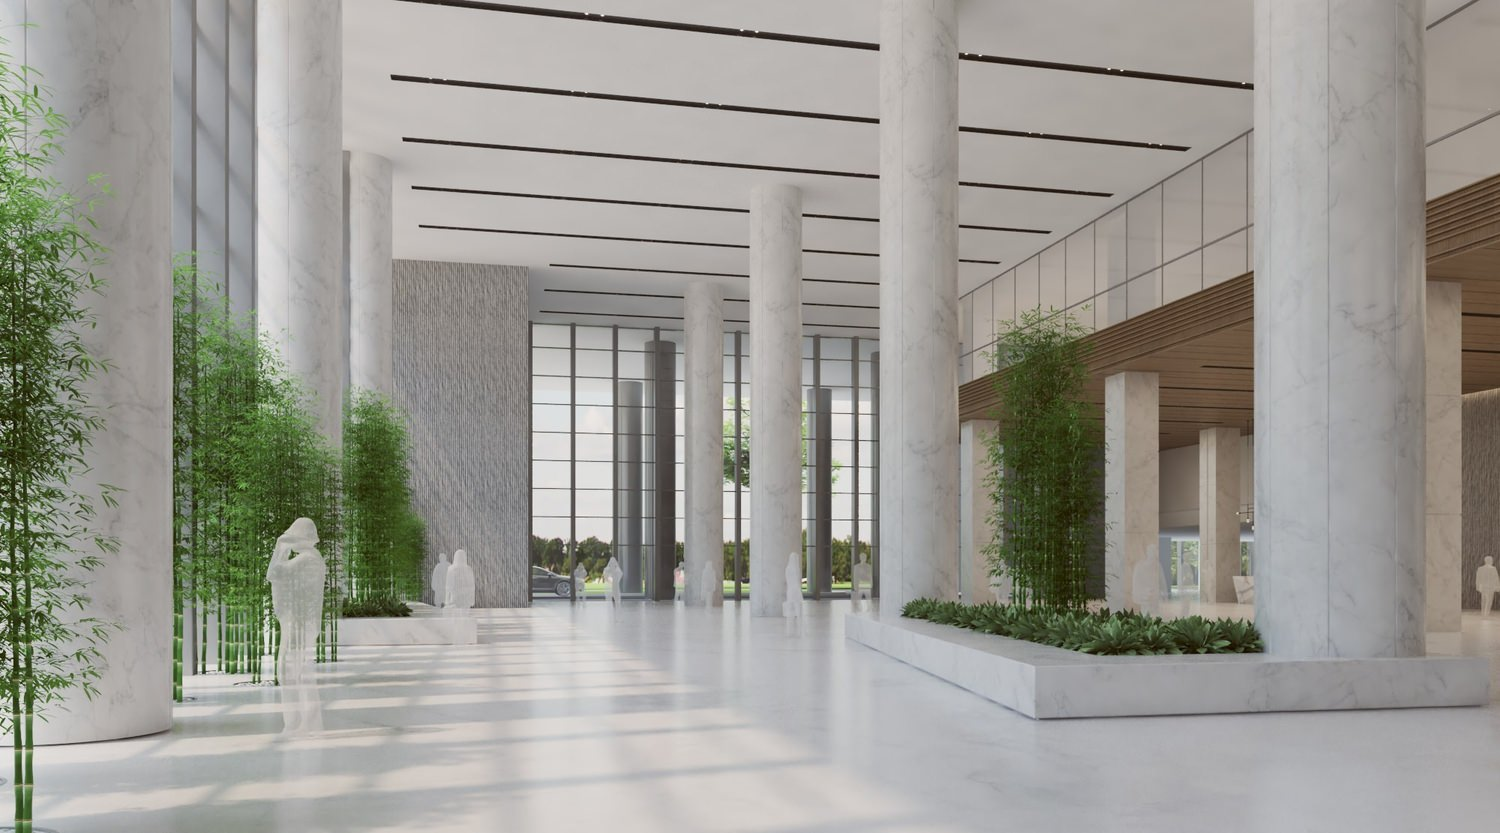 Large lobby that is made of white columns and tiles with plants along the windows.